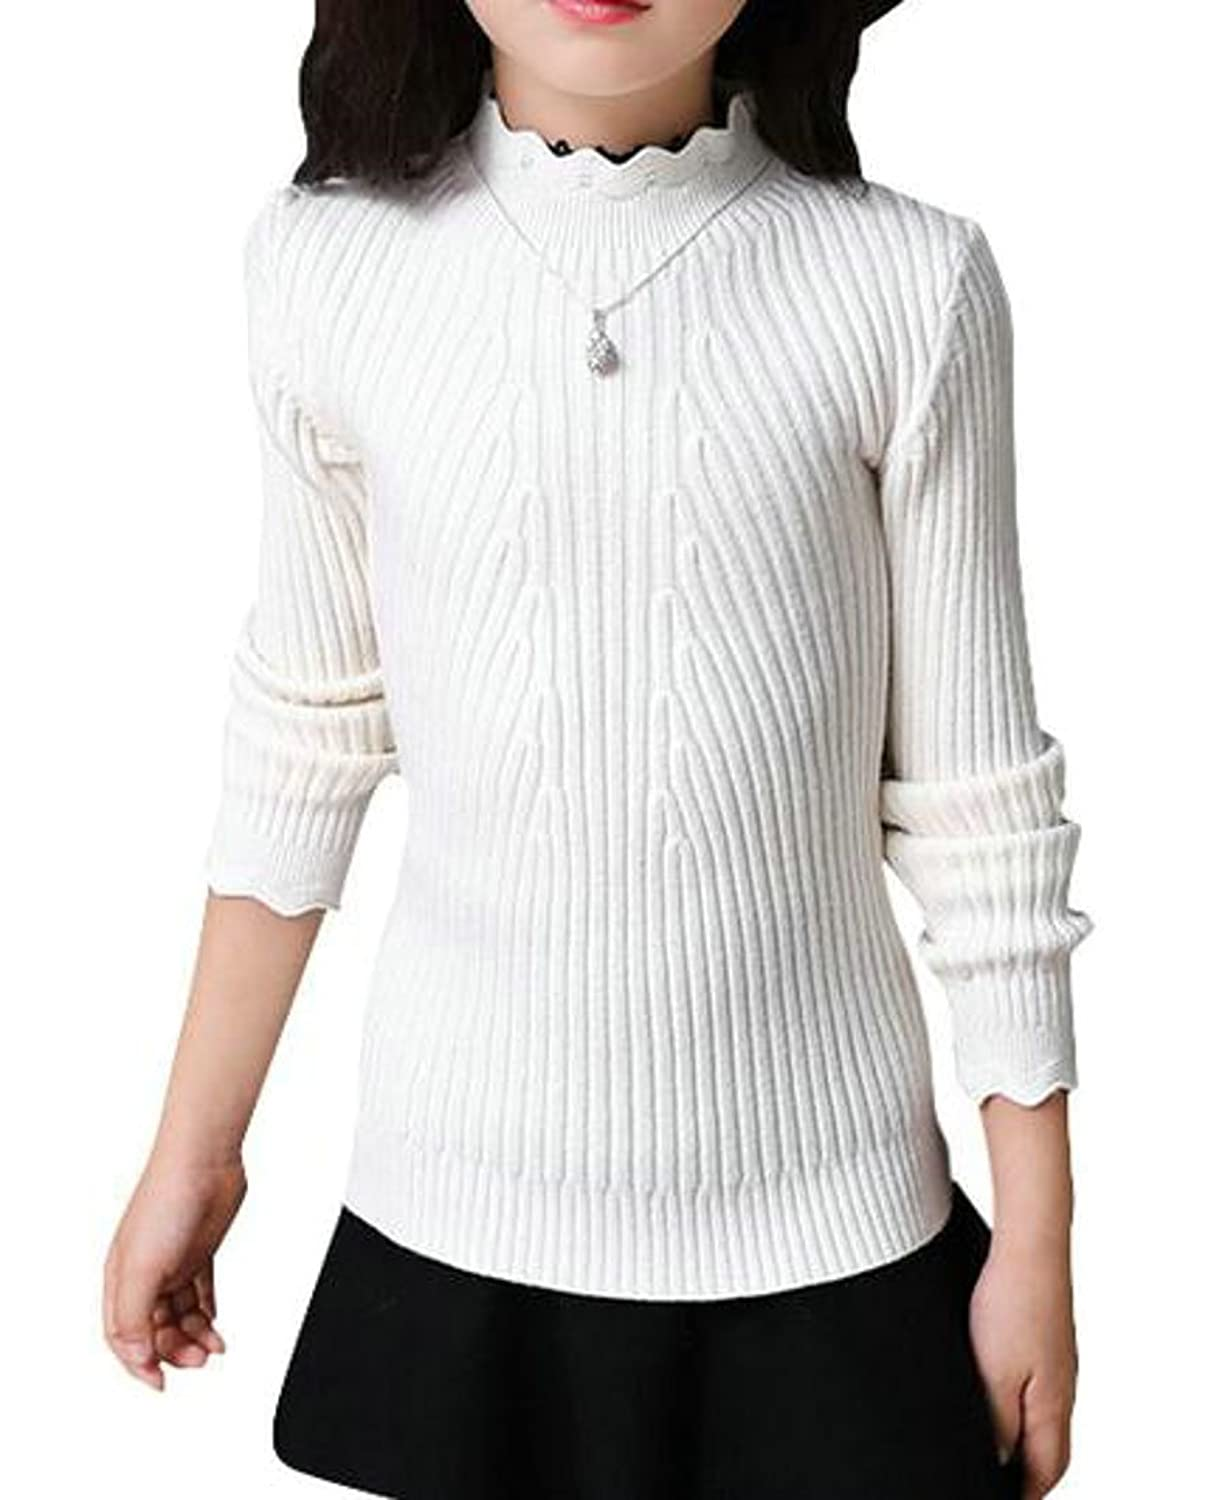 b3868bc5c17b MLG Girls  Long Sleeve Crewneck Knitted Cute Pullover Sweater ...